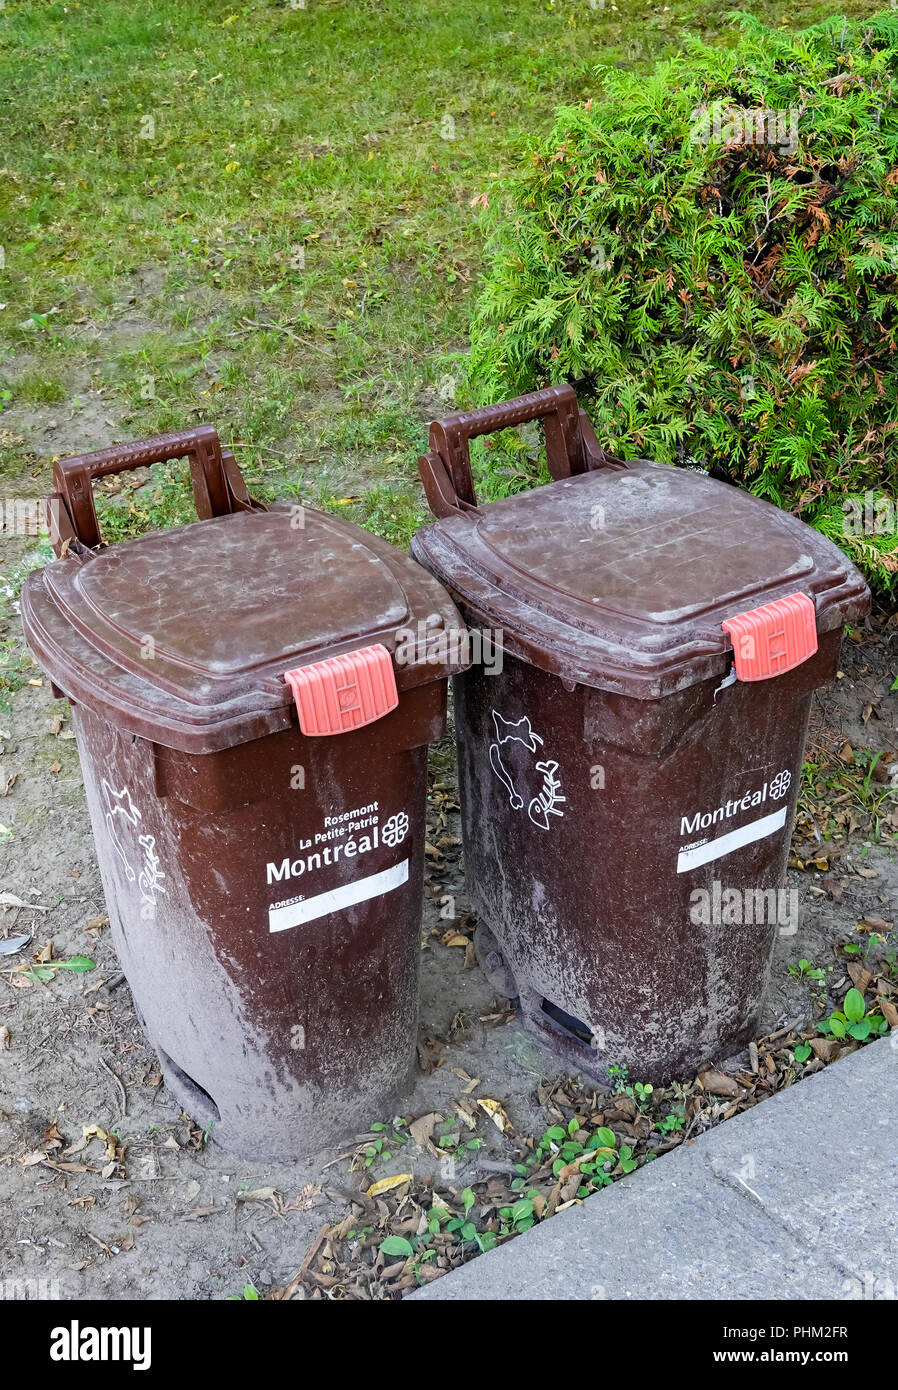 Brown bins for the collection of compost in Montreal, QC, Canada Stock Photo